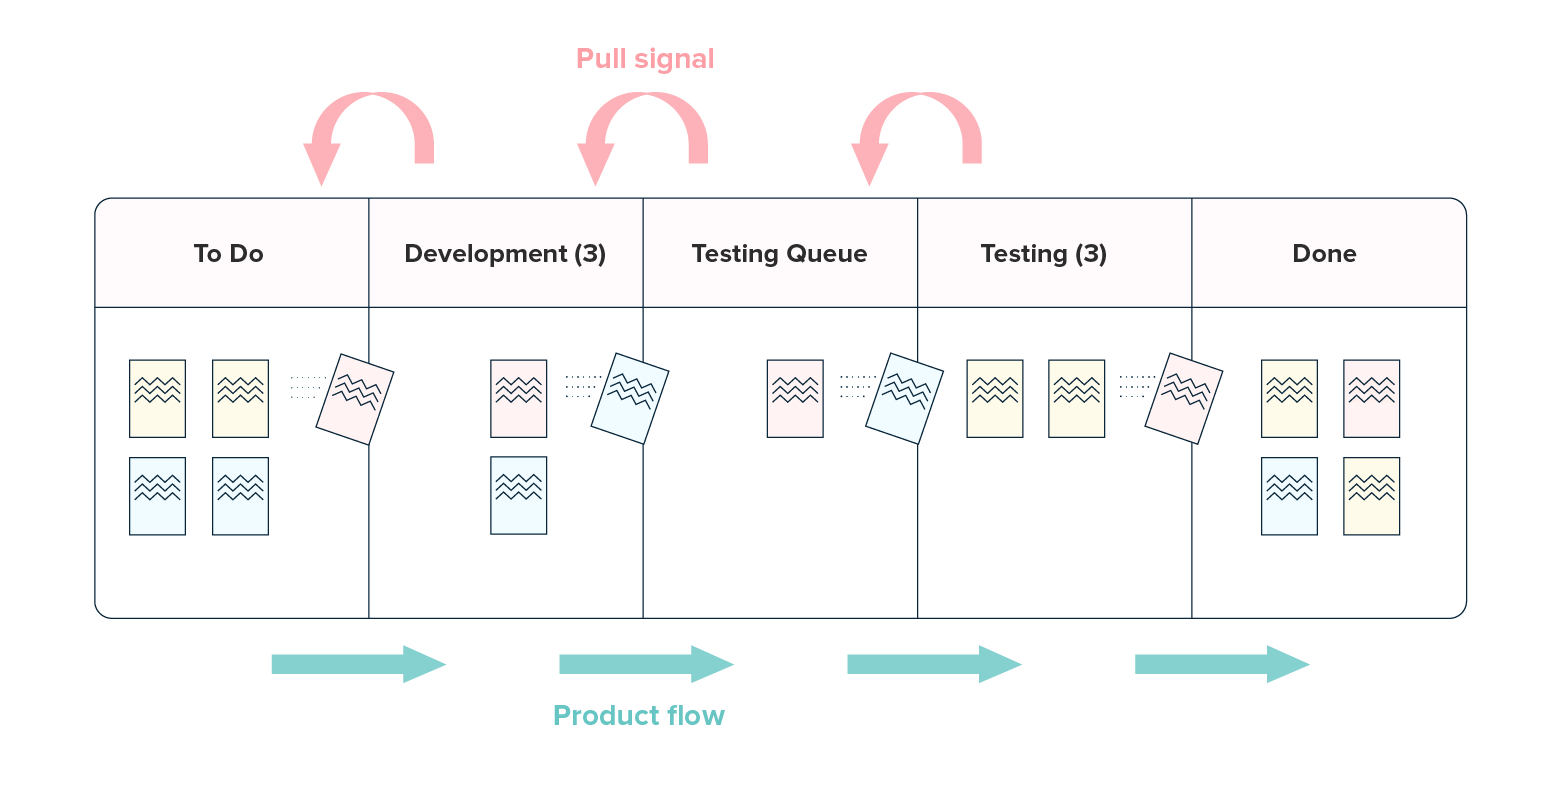 Queue states in a Kanban Pull System